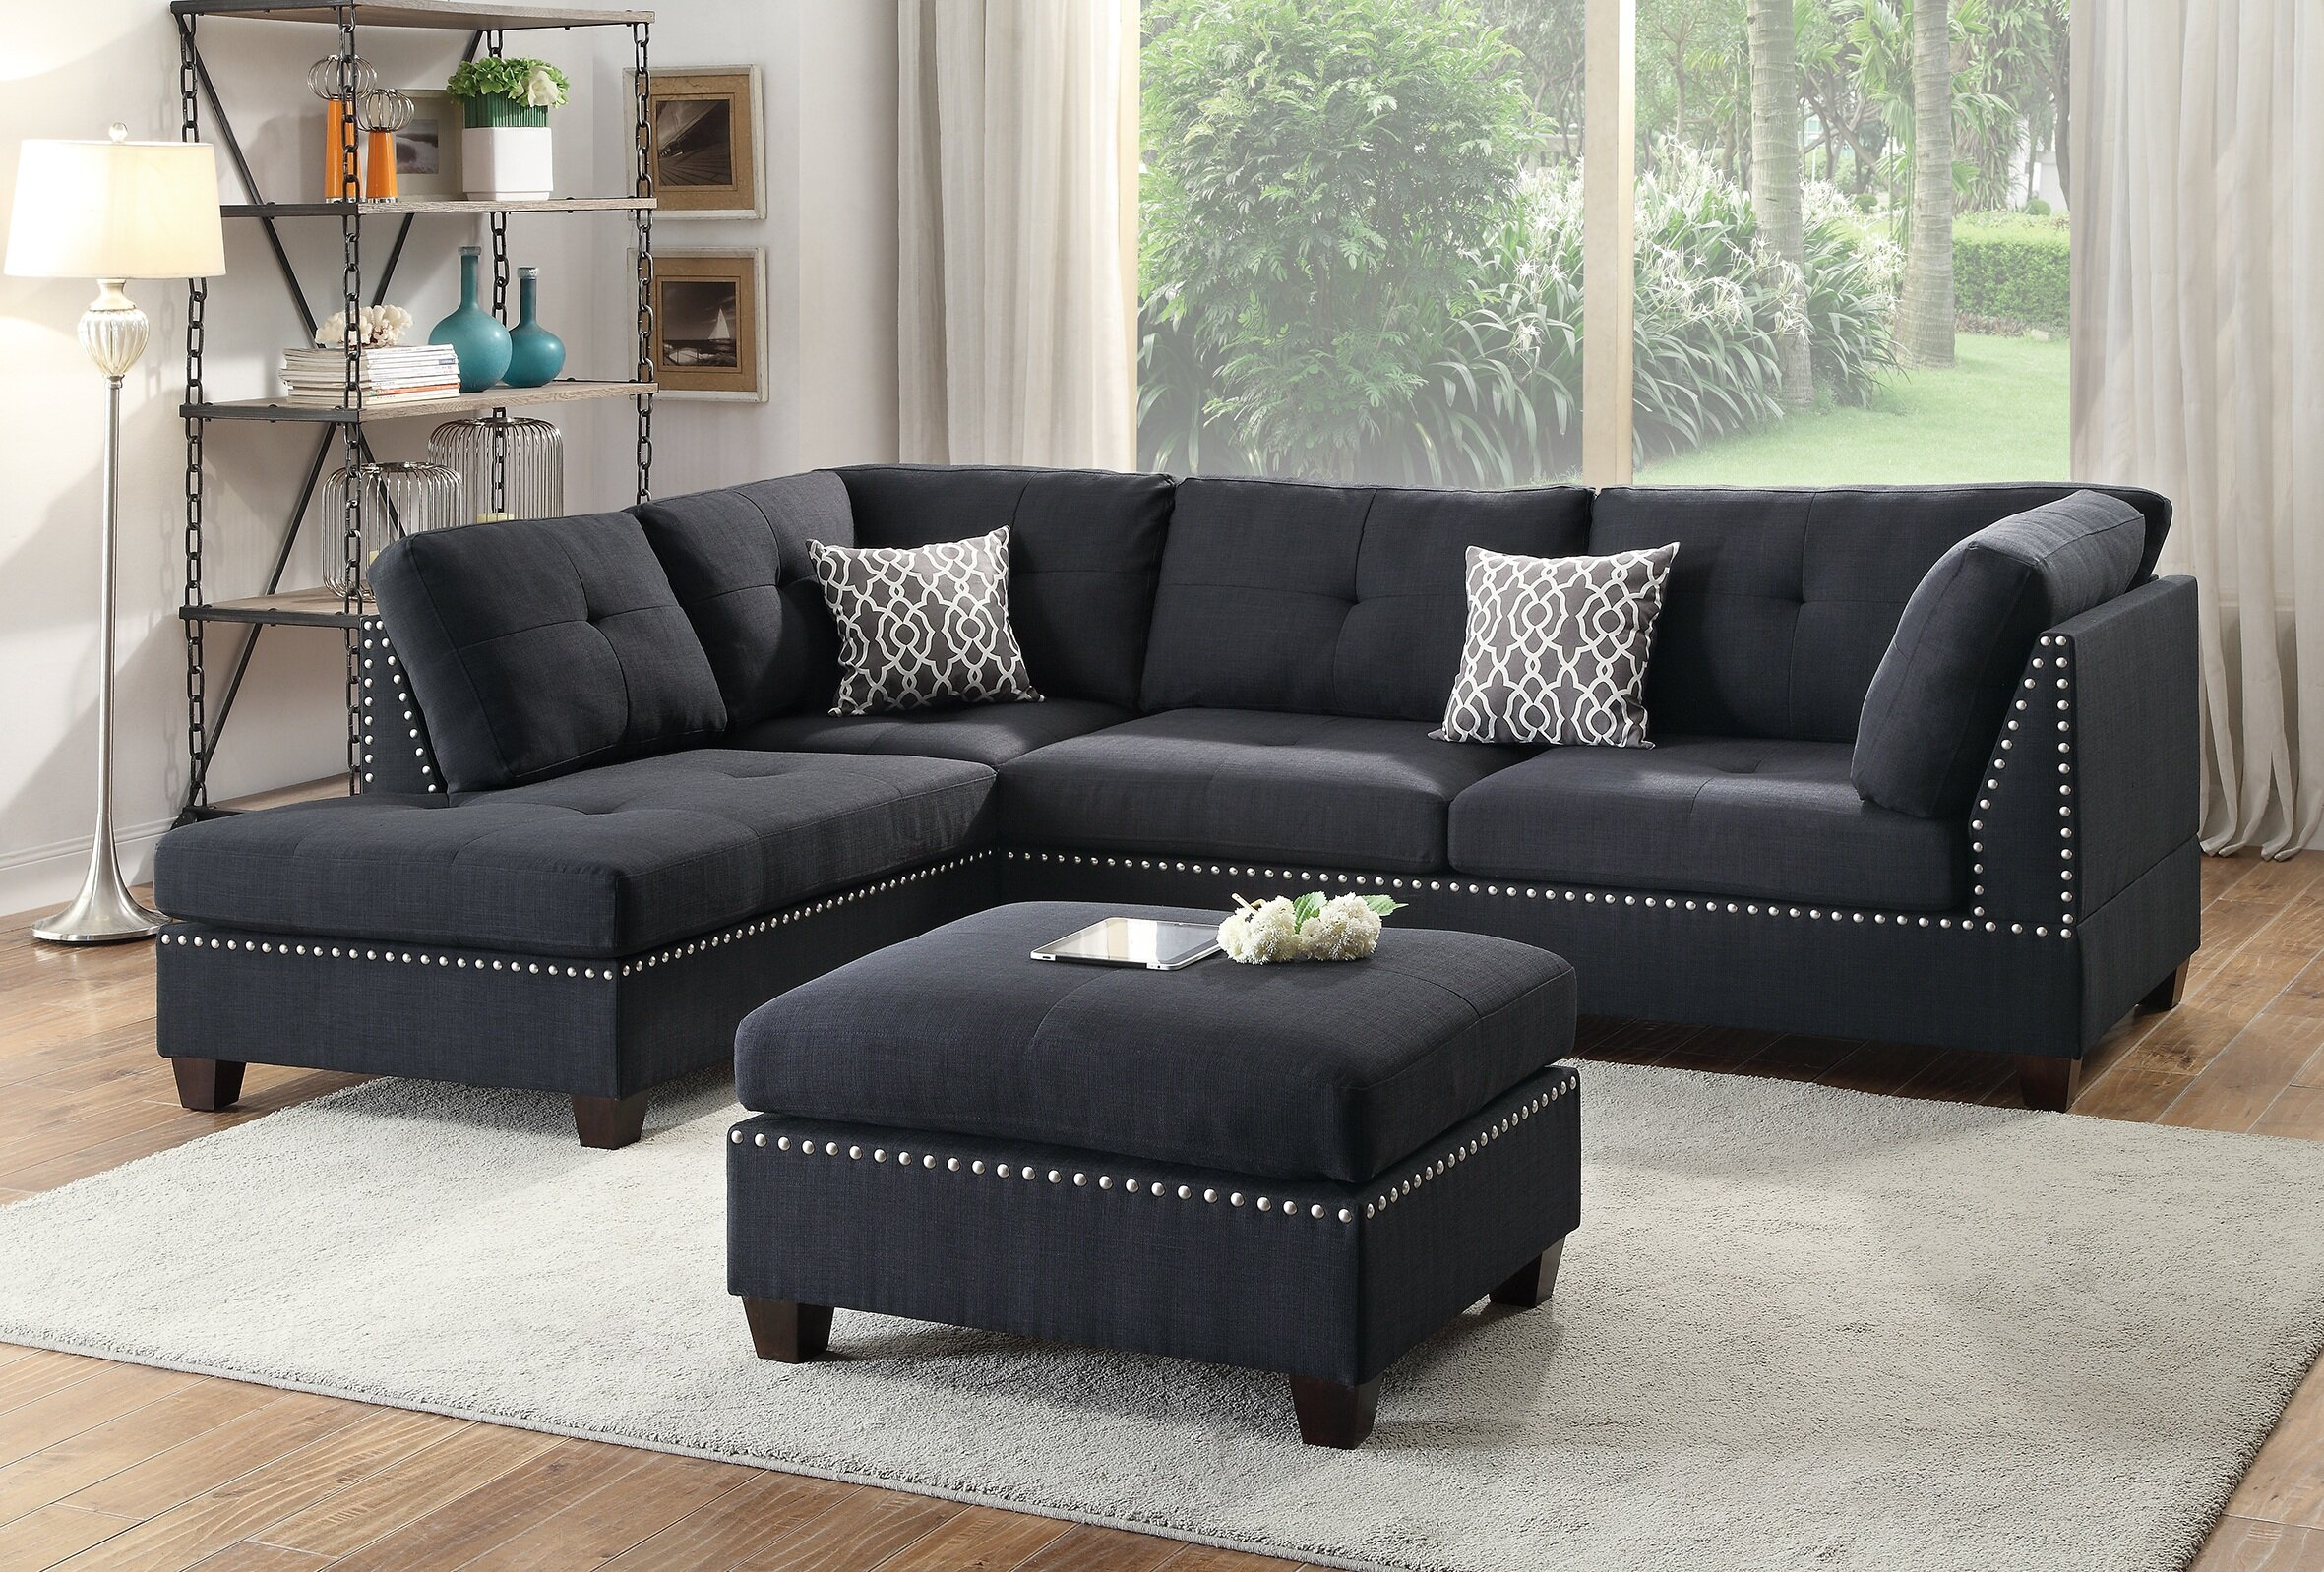 Super Aj Homes Studio Tammy Reversible Sectional With Ottoman Pabps2019 Chair Design Images Pabps2019Com